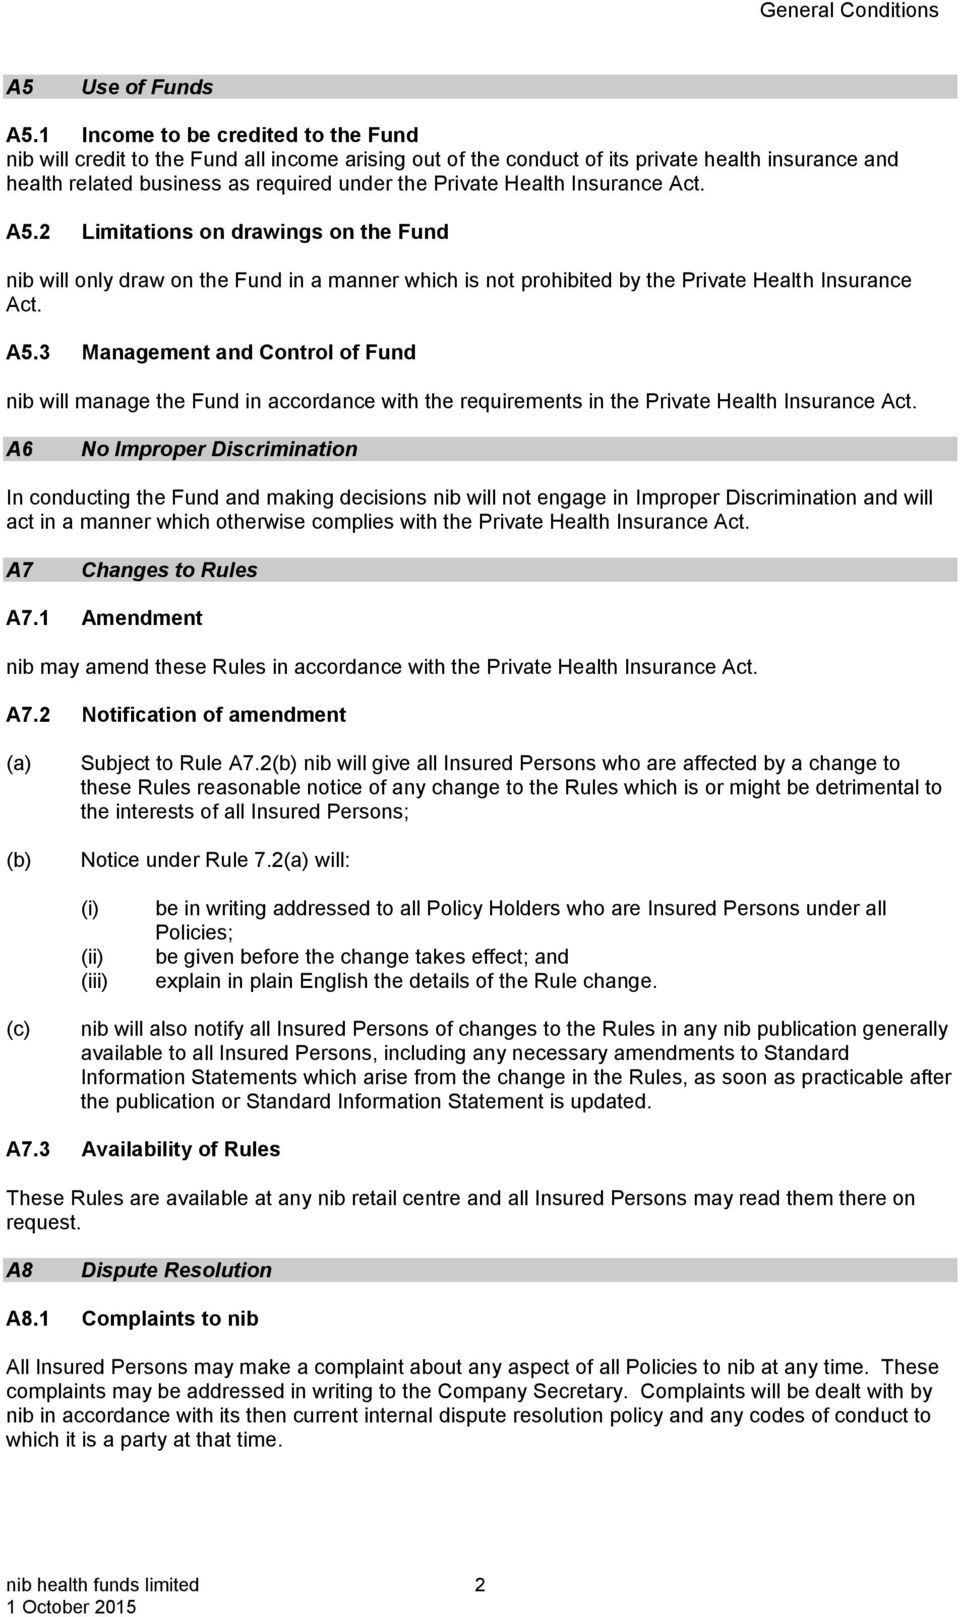 Insurance Act. A5.2 Limitations on drawings on the Fund nib will only draw on the Fund in a manner which is not prohibited by the Private Health Insurance Act. A5.3 Management and Control of Fund nib will manage the Fund in accordance with the requirements in the Private Health Insurance Act.